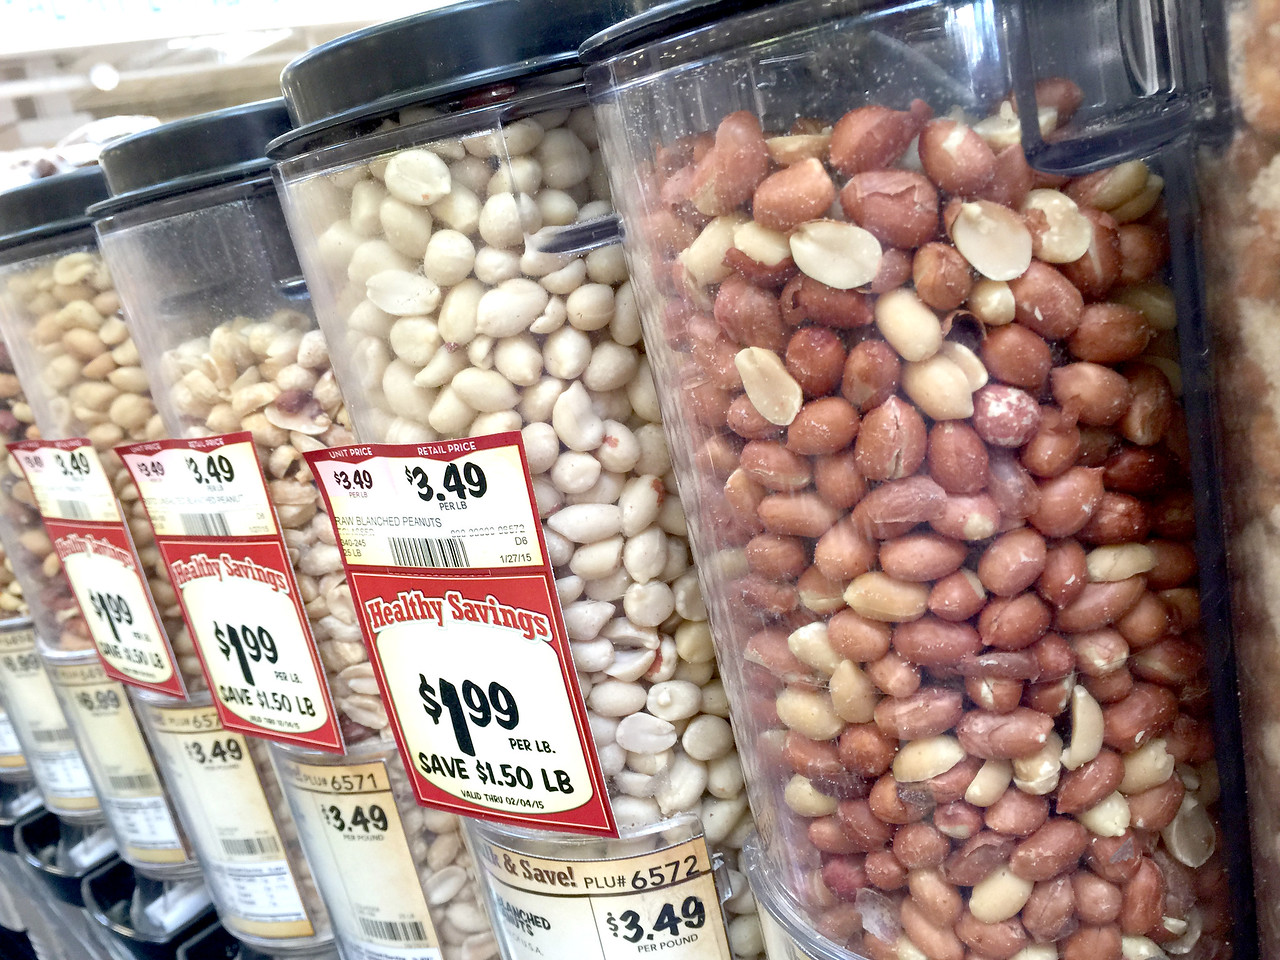 Peanuts for sale at Sprouts grocery store in Oklahoma City, OK.